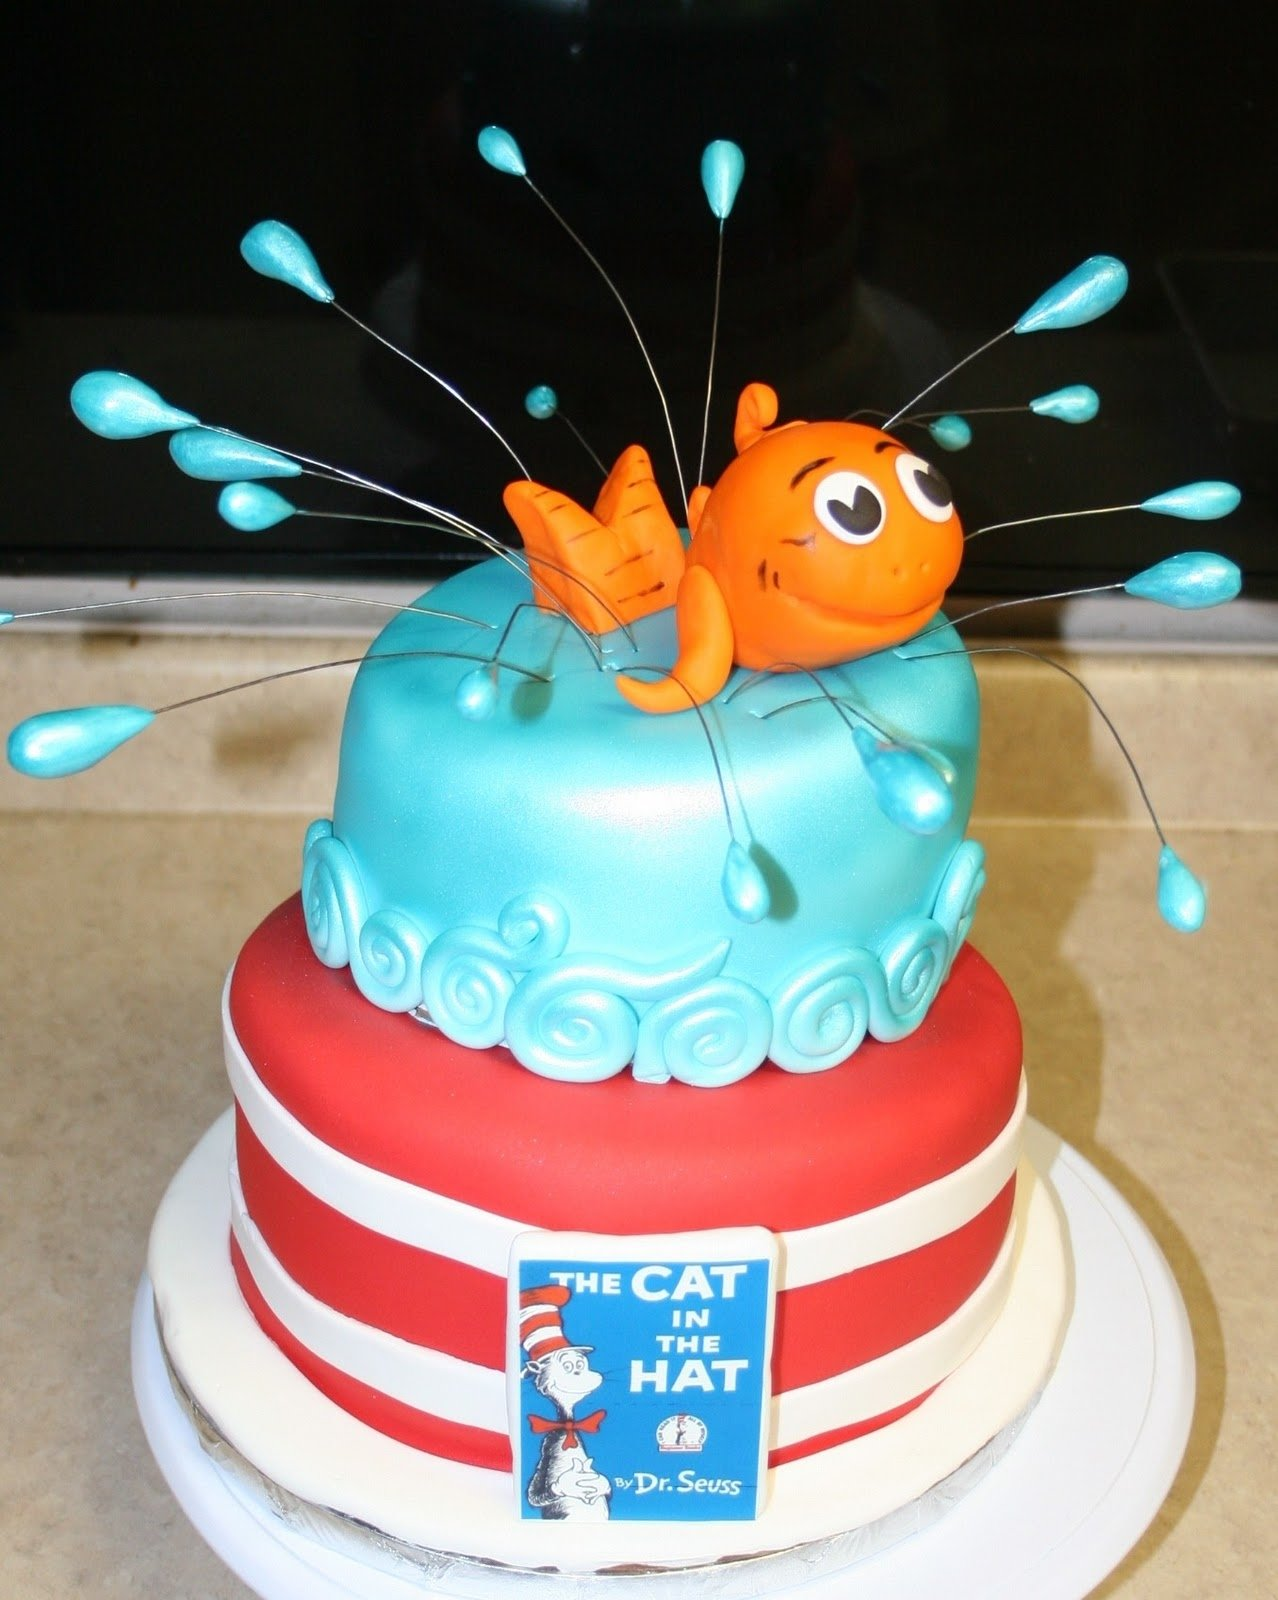 10 Attractive Cat In The Hat Cake Ideas michele robinson cakes the cat in the hat cake